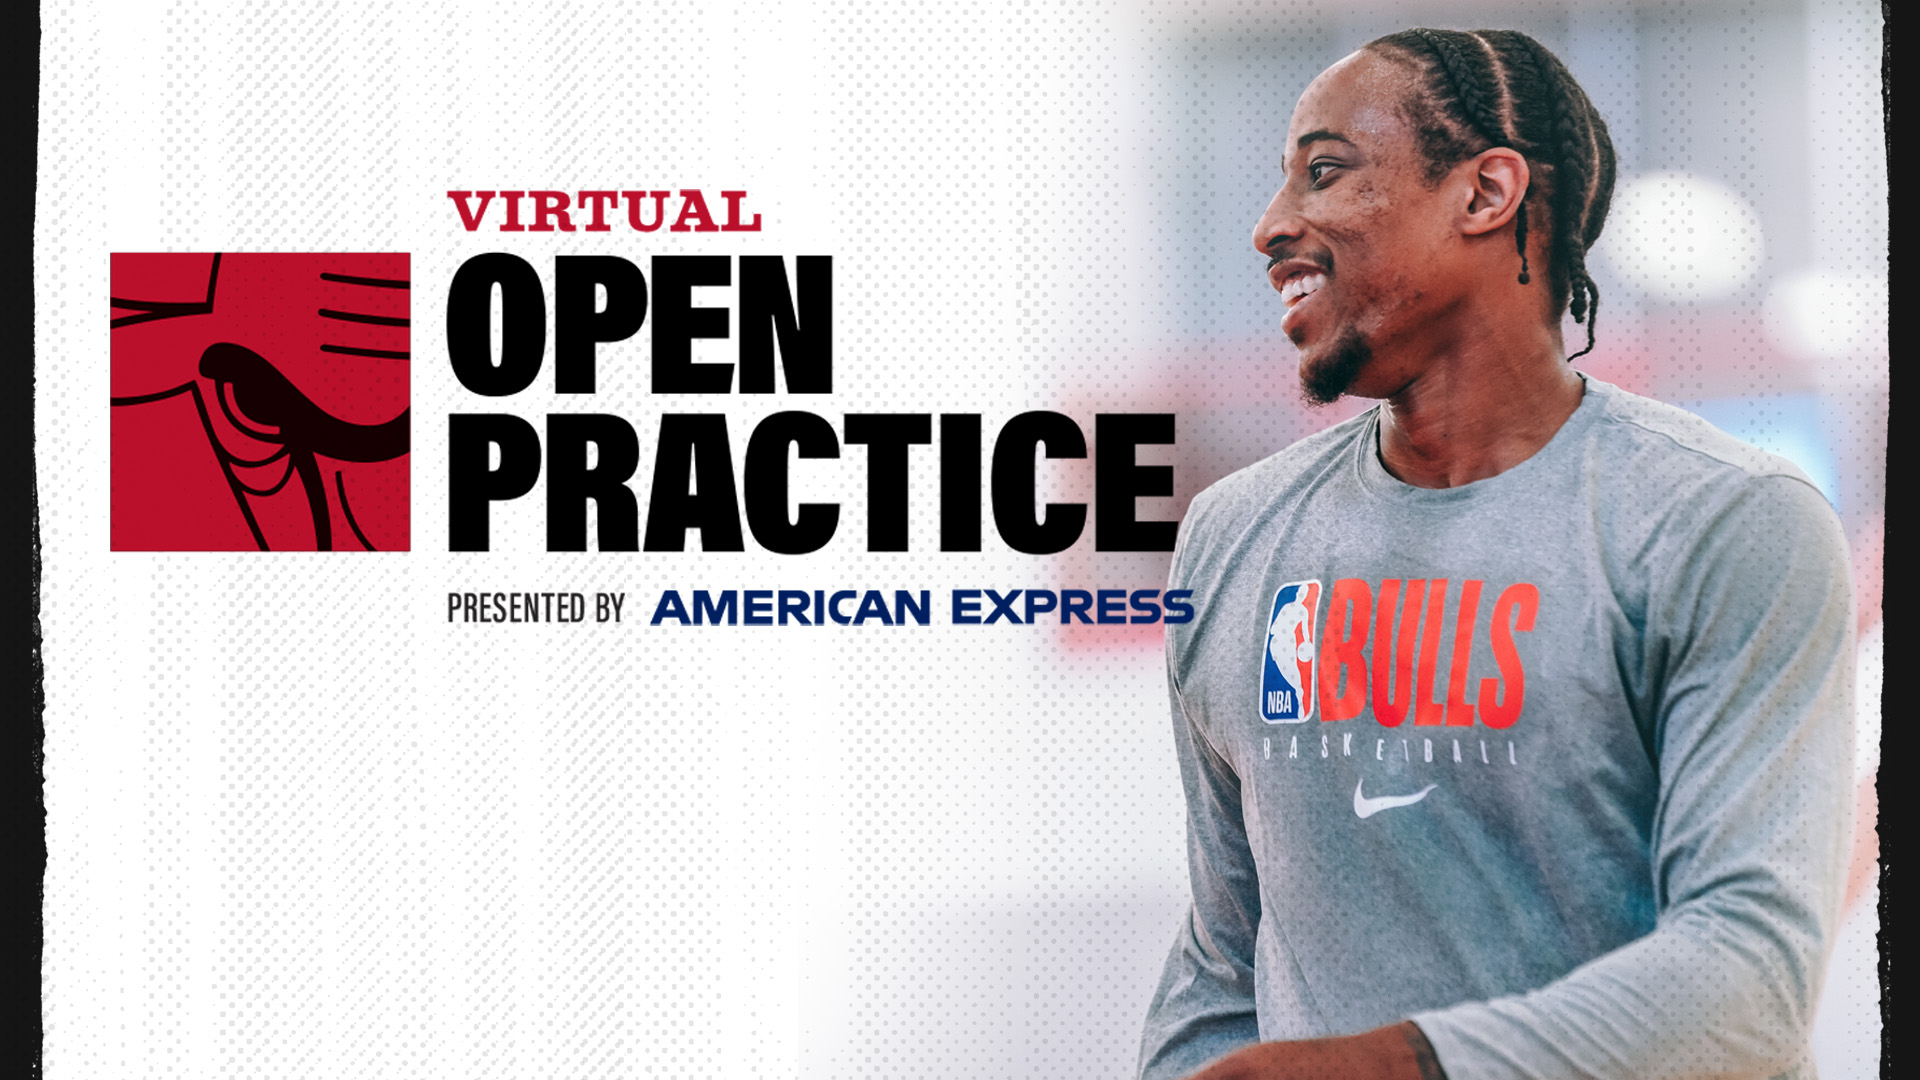 Bulls Open Practice presented by American Express